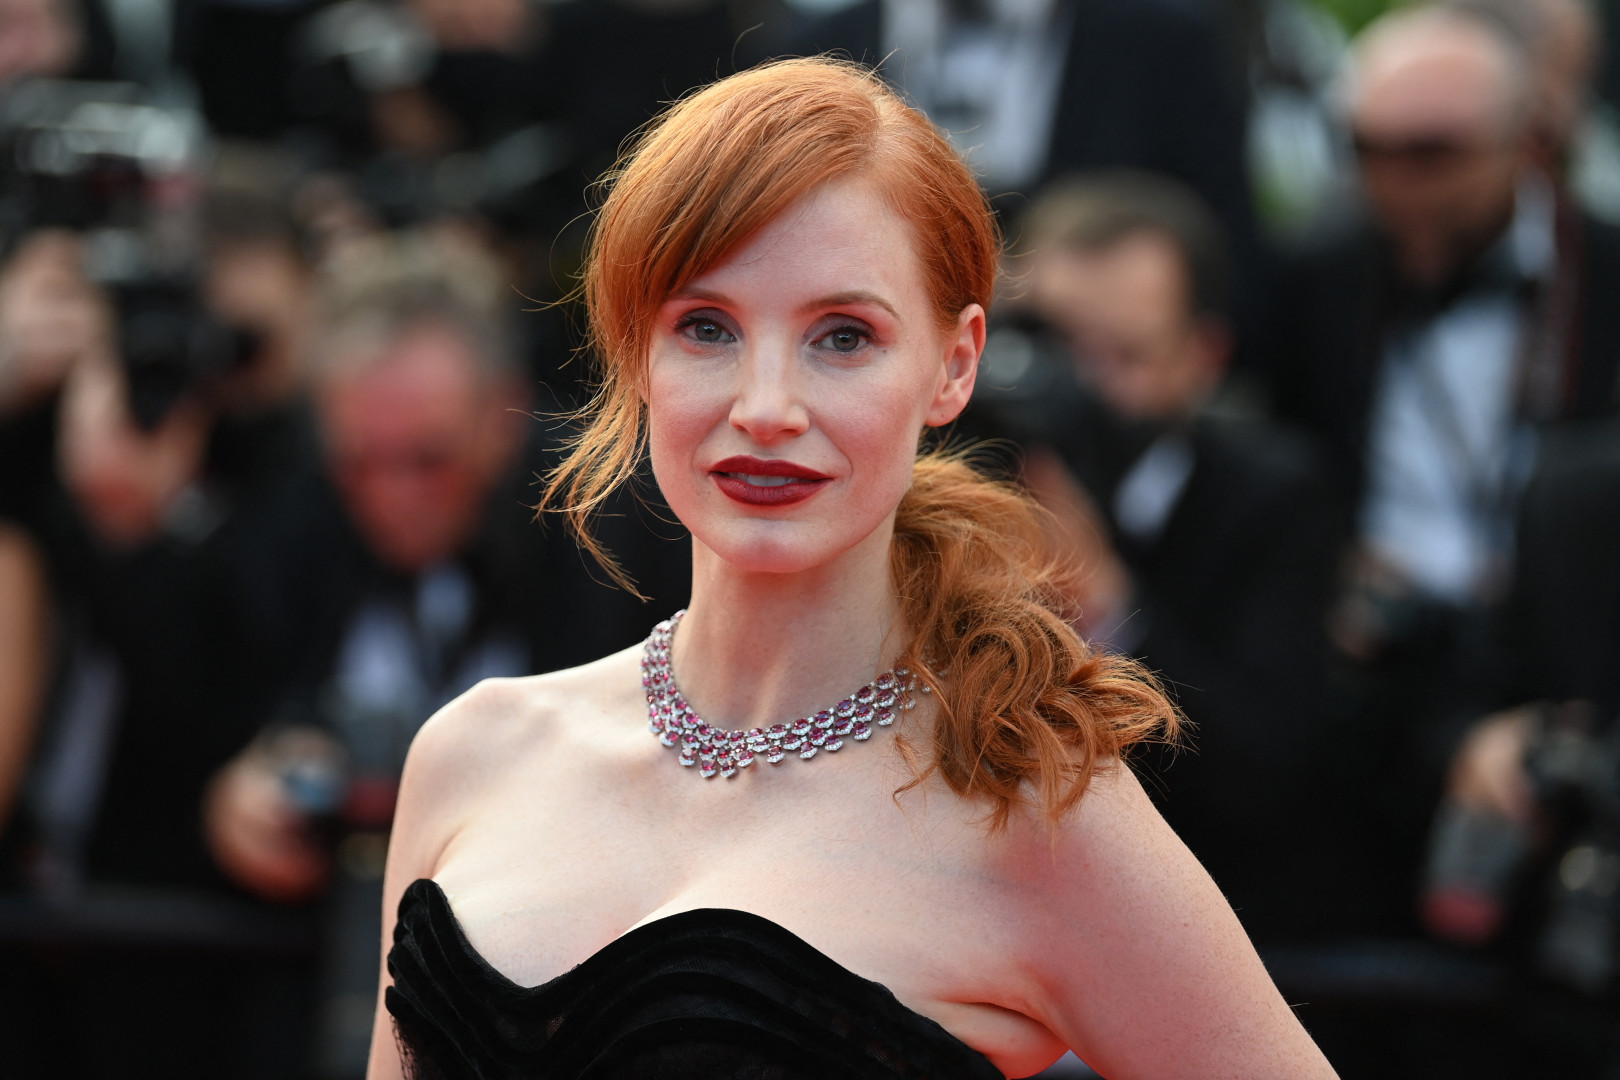 3 - Jessica Chastain (44 ans)